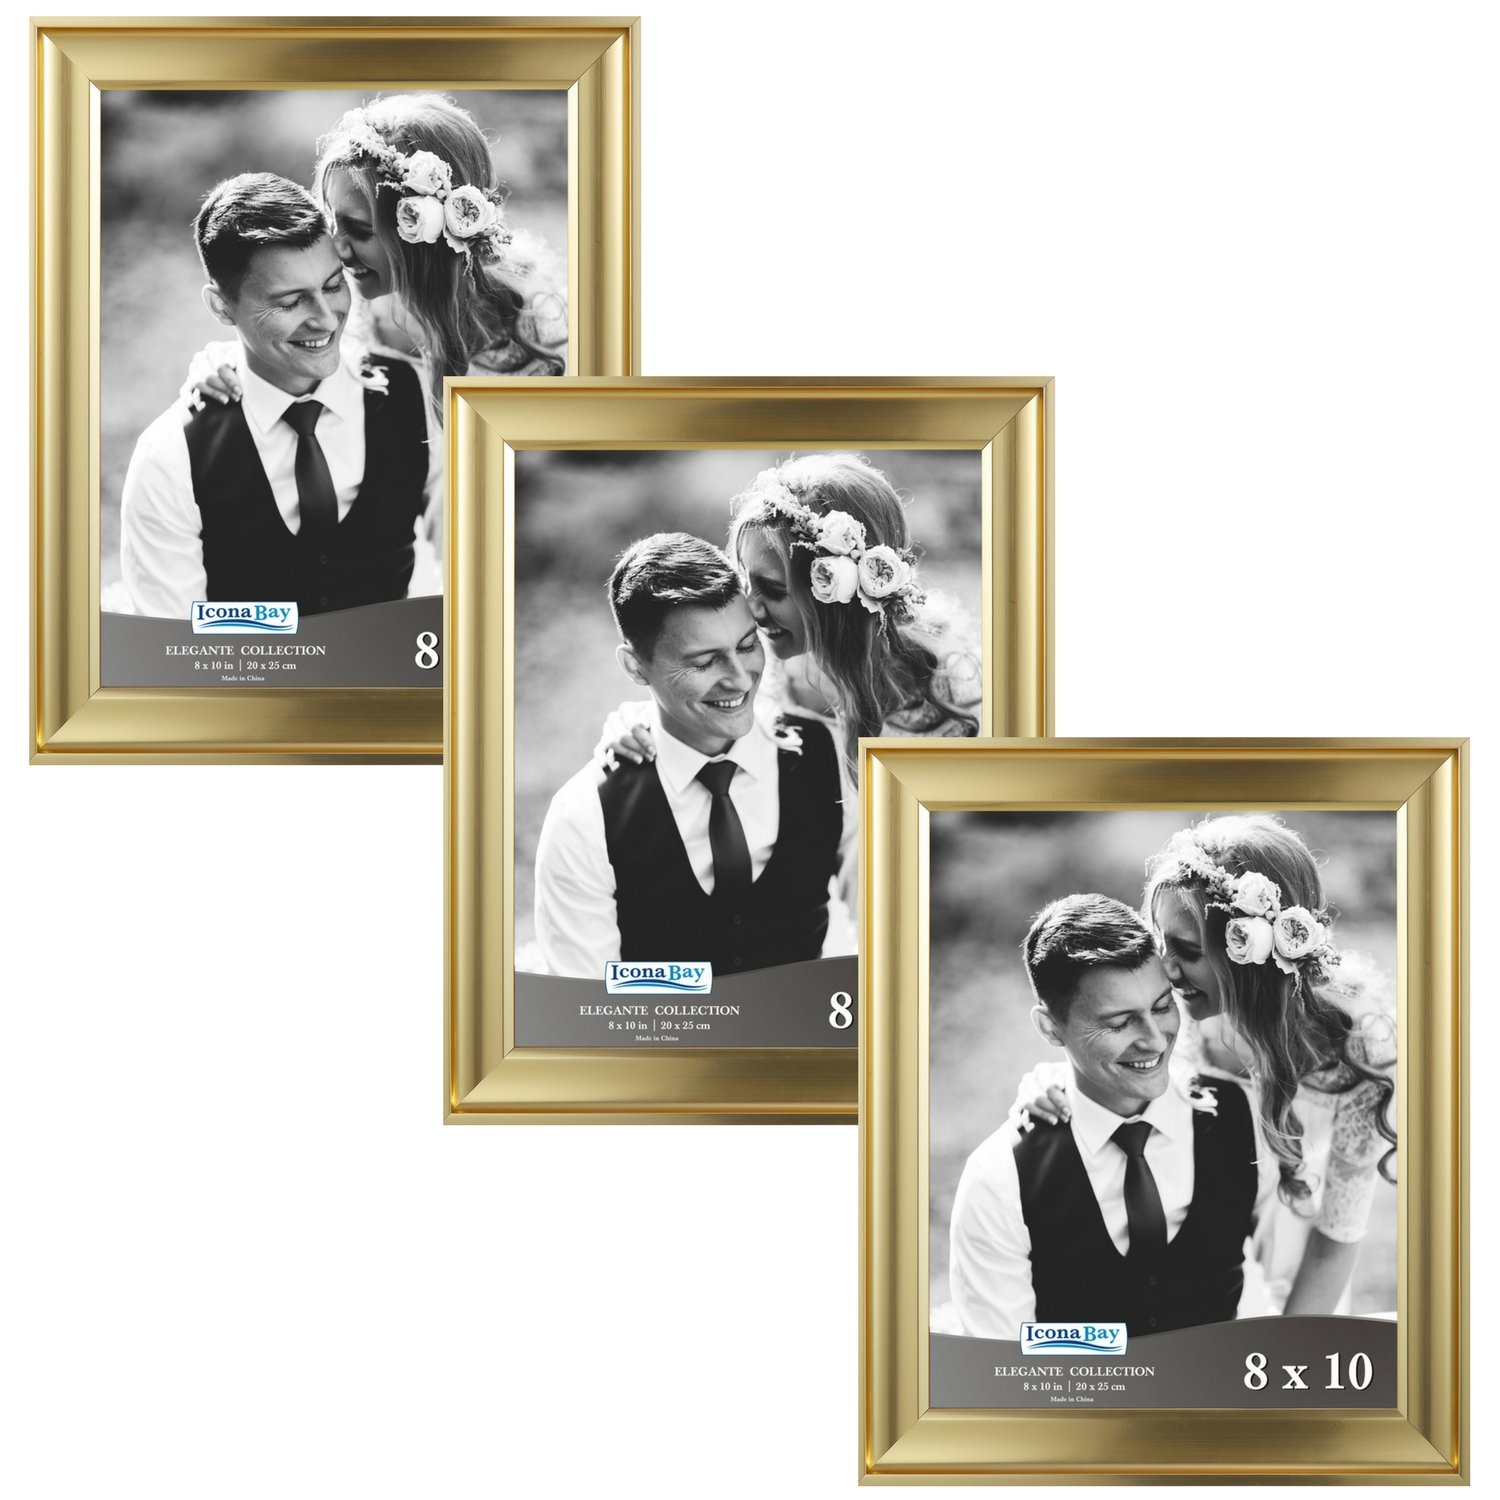 Icona Bay 8 by 10 Picture Frames (8x10, 3 Pack, Gold) Photo Frames, Wall Mount Hangers and Black Velvet Back, Table Top Easel, Landscape as 10x8 Picture Frames or Portrait as 8x10, Elegante Collection